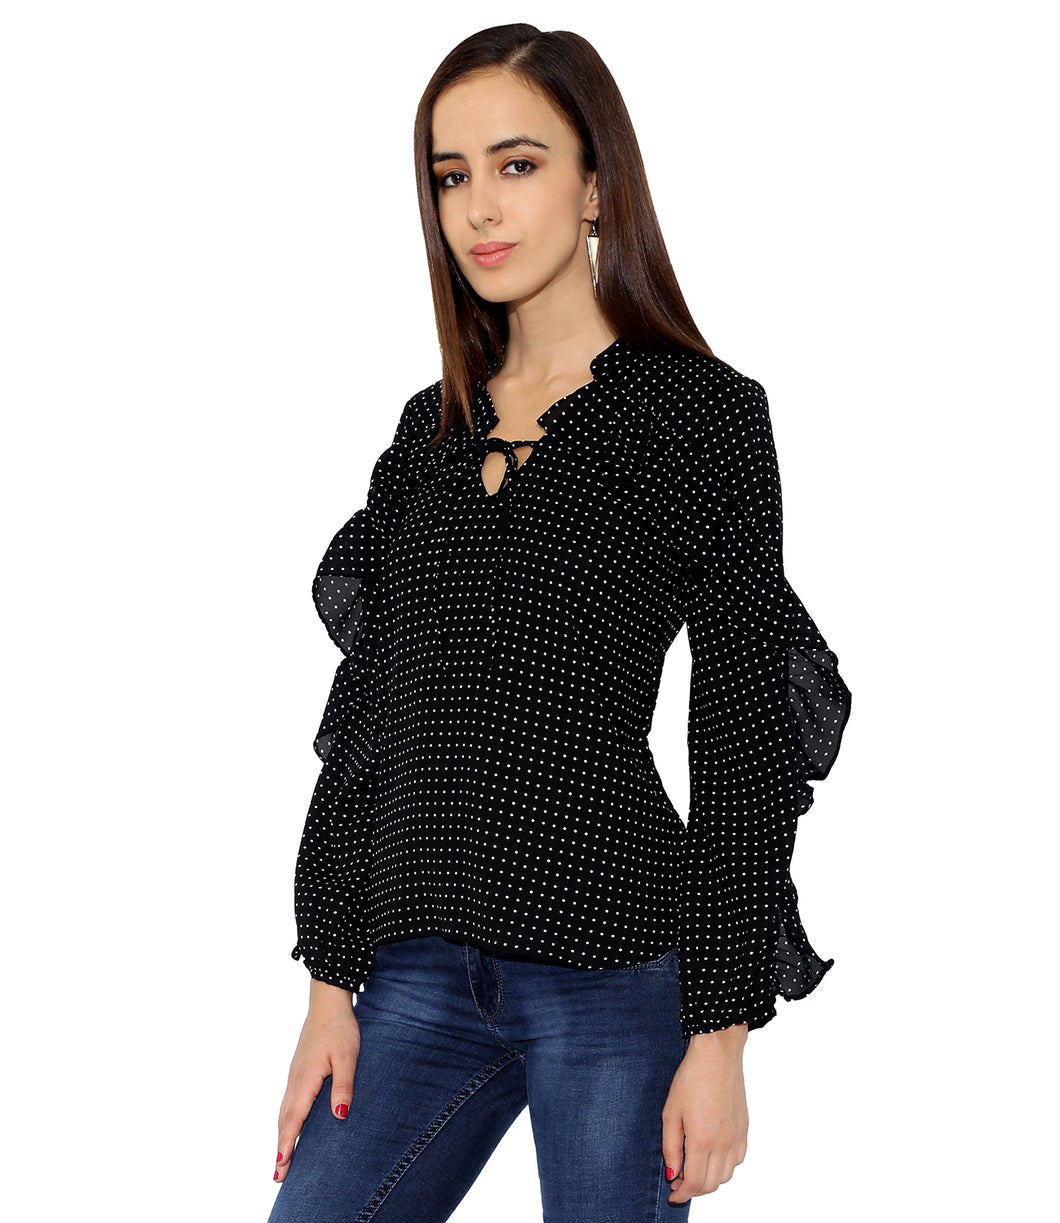 Polka Dot Frilled Top